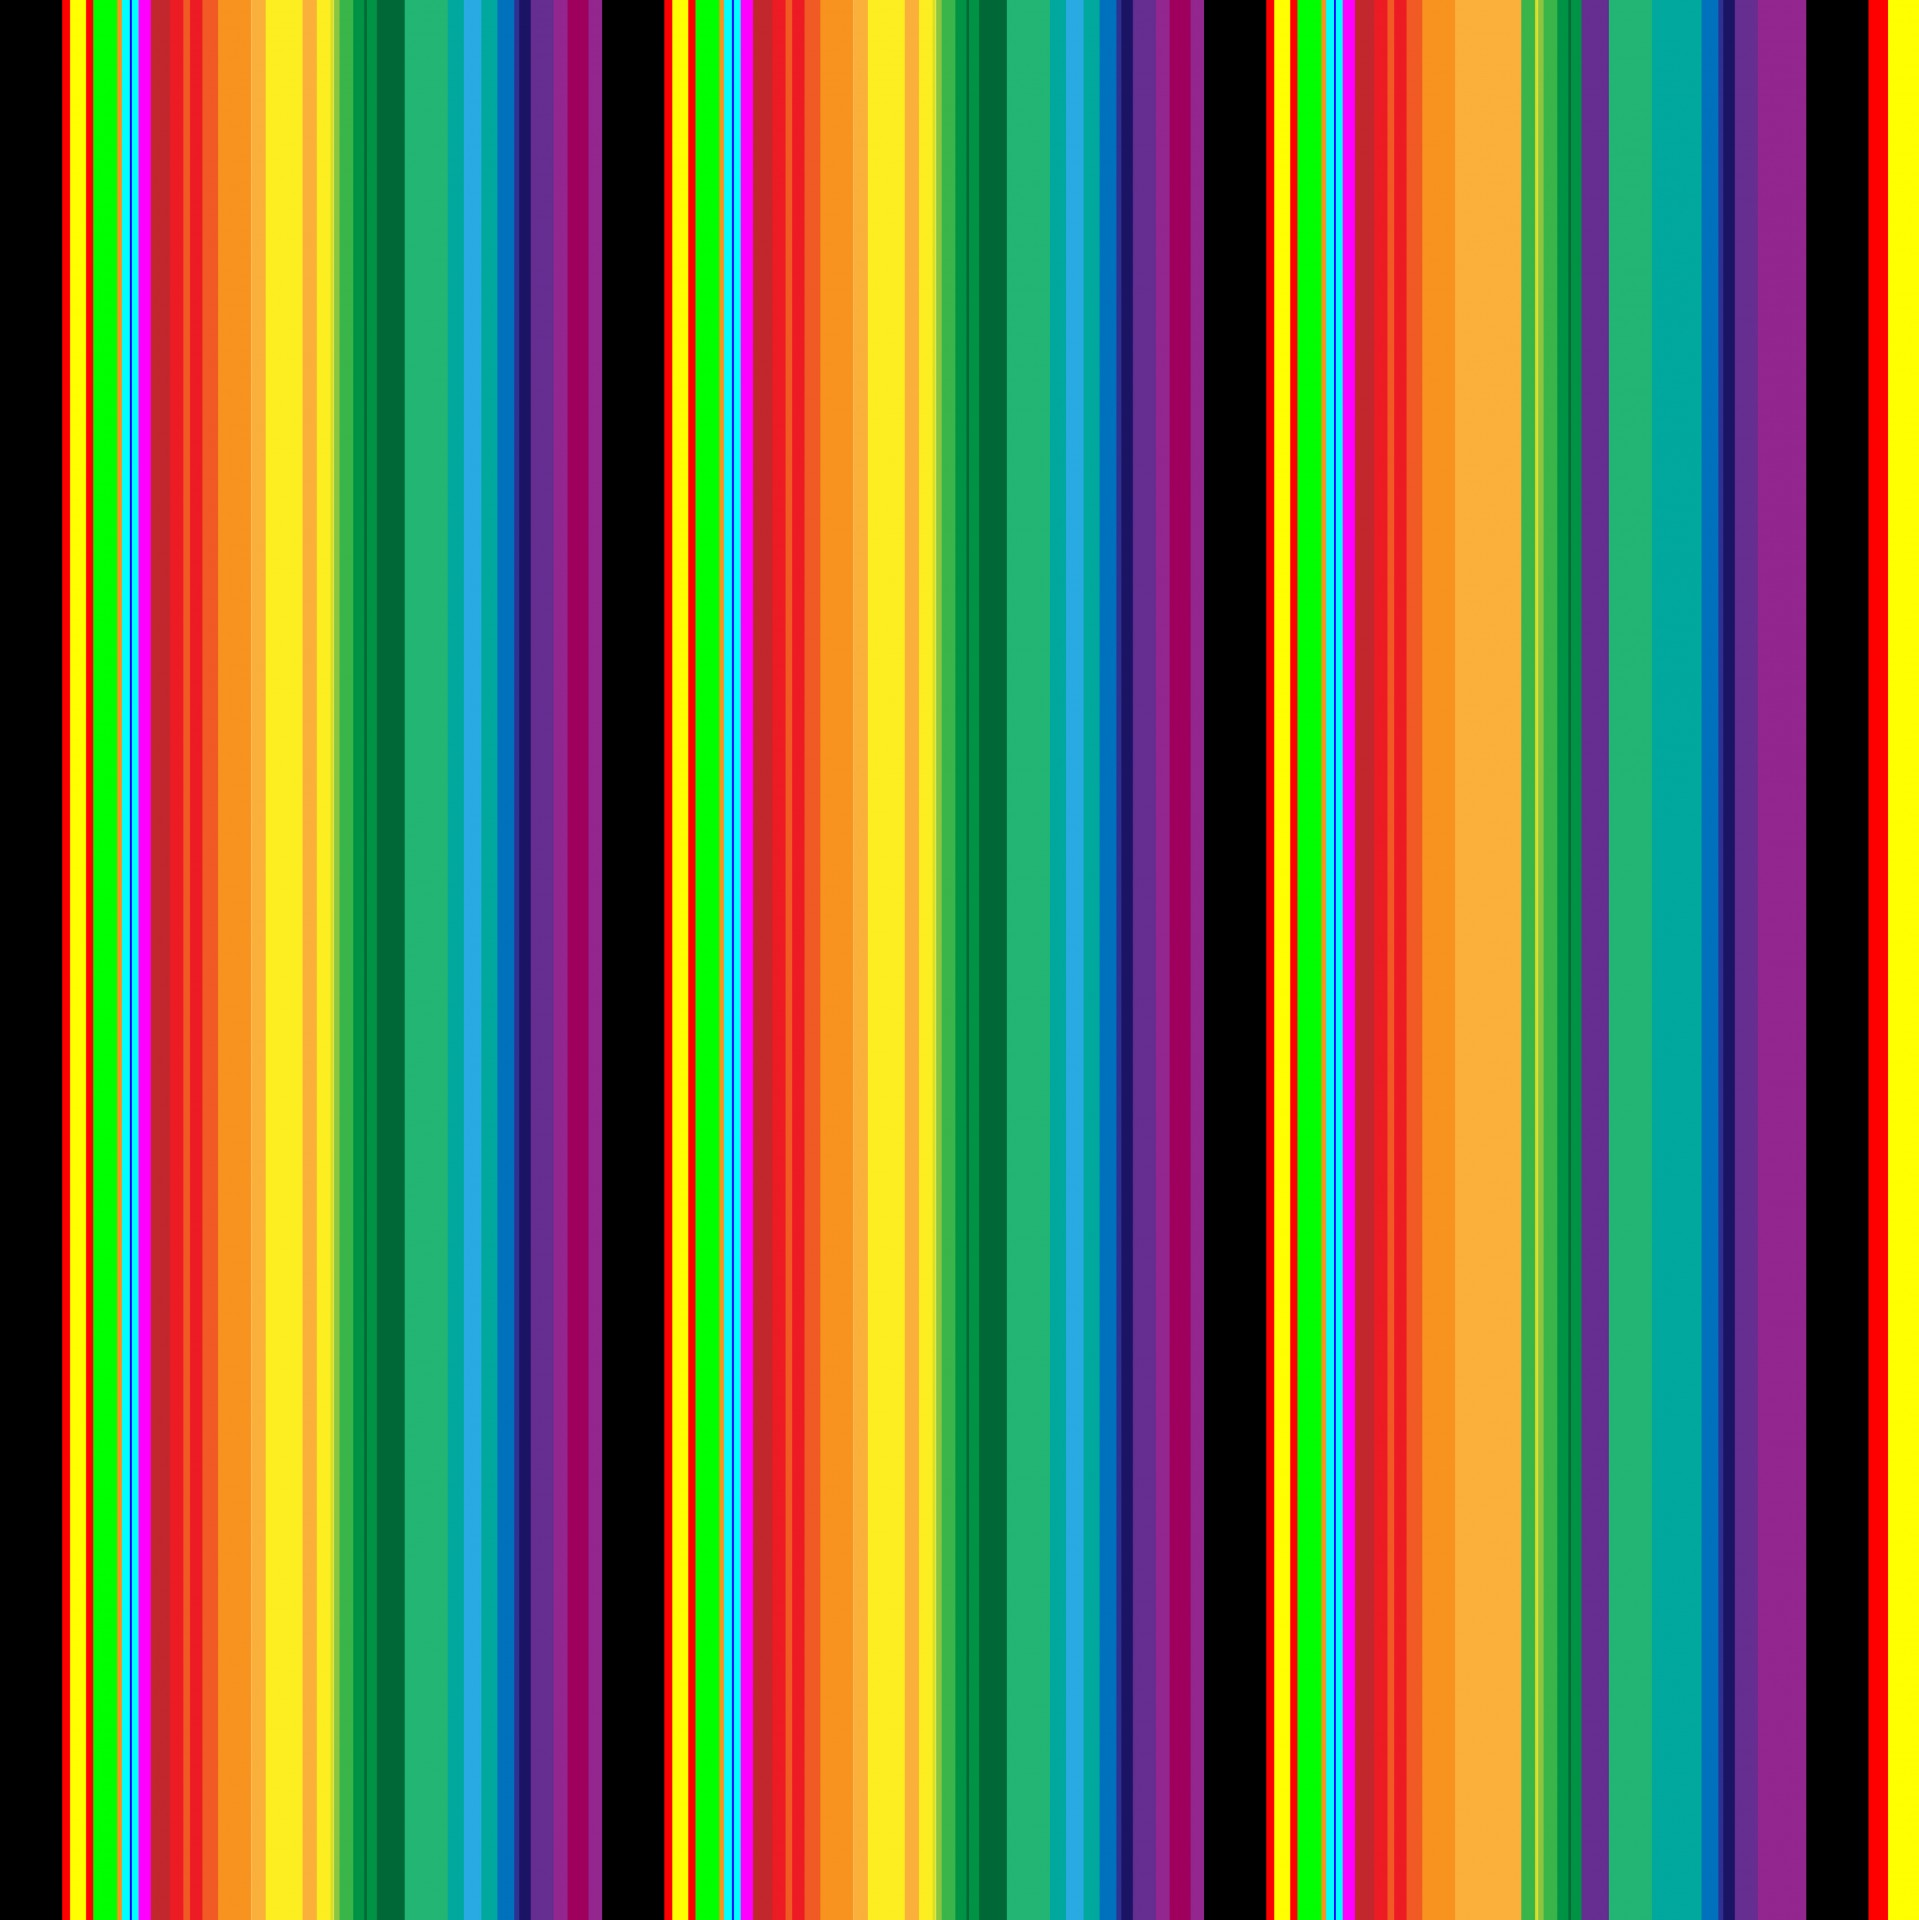 Colorful Hd Iphone Wallpapers Stripes Wallpaper Background Free Stock Photo Public